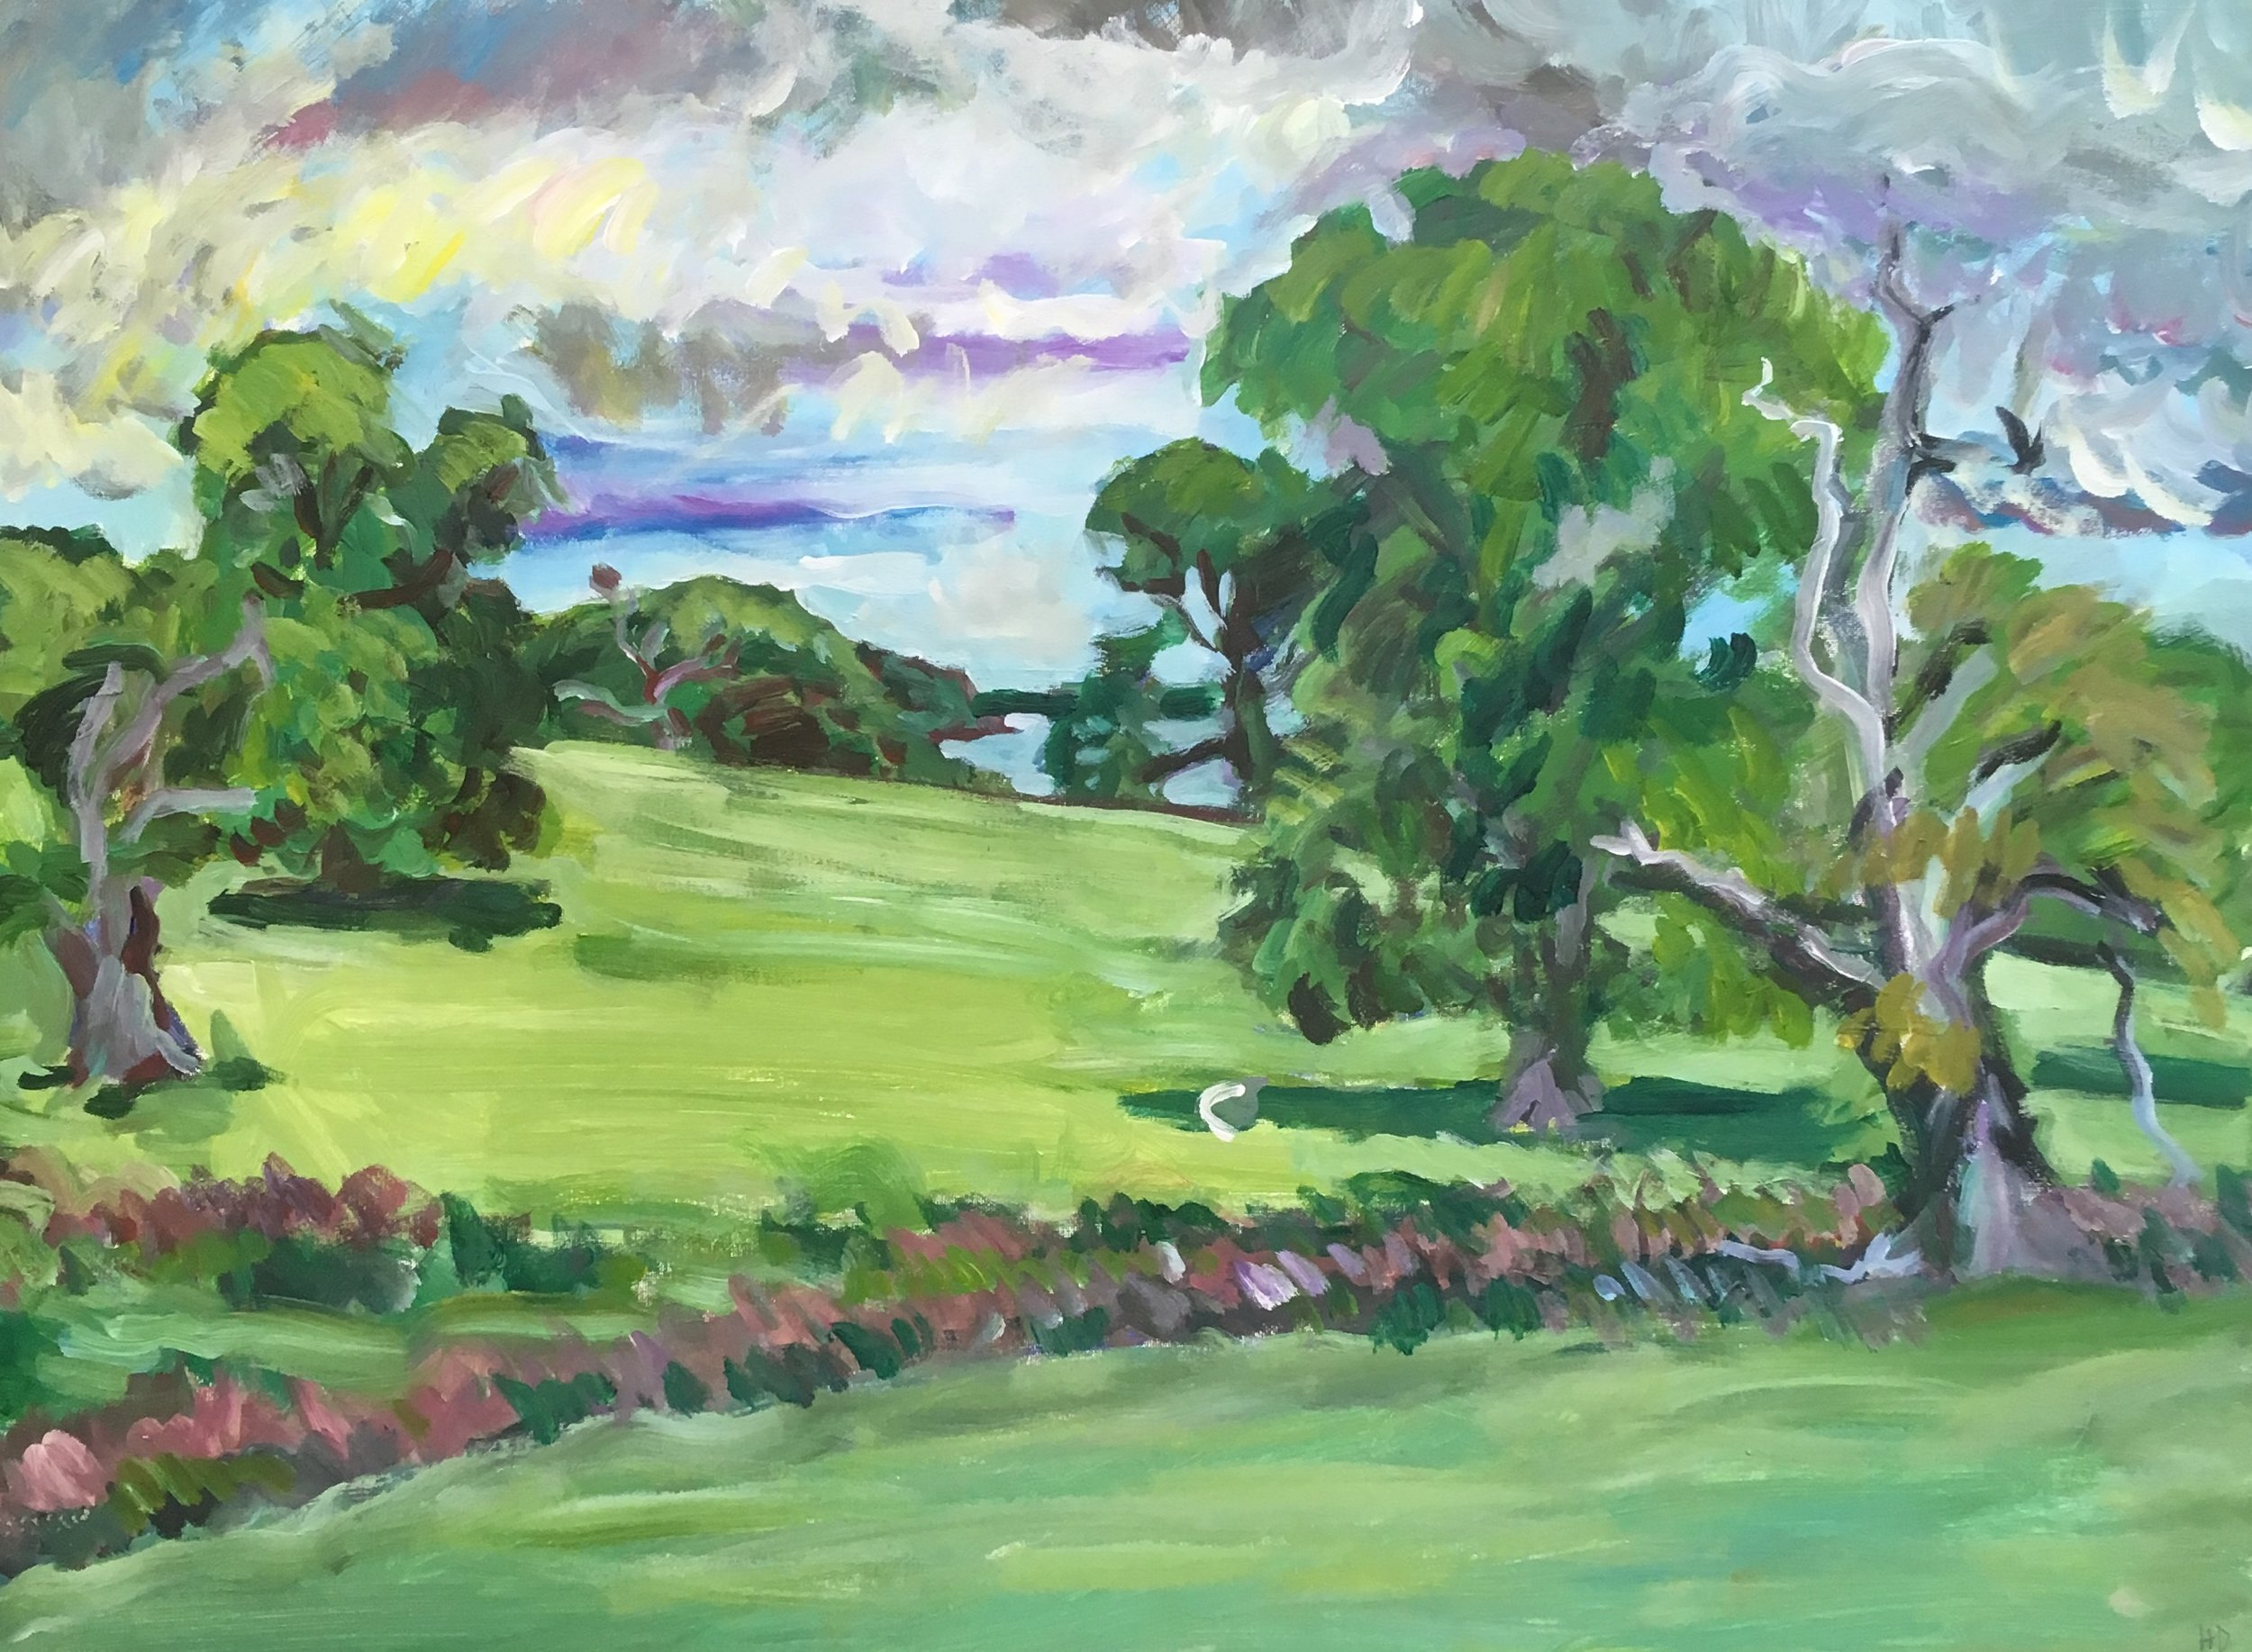 Suffolk , banks of the Orwell river  acrylic on canvas  60 by 80 by 1.5 cm  £800  unframed